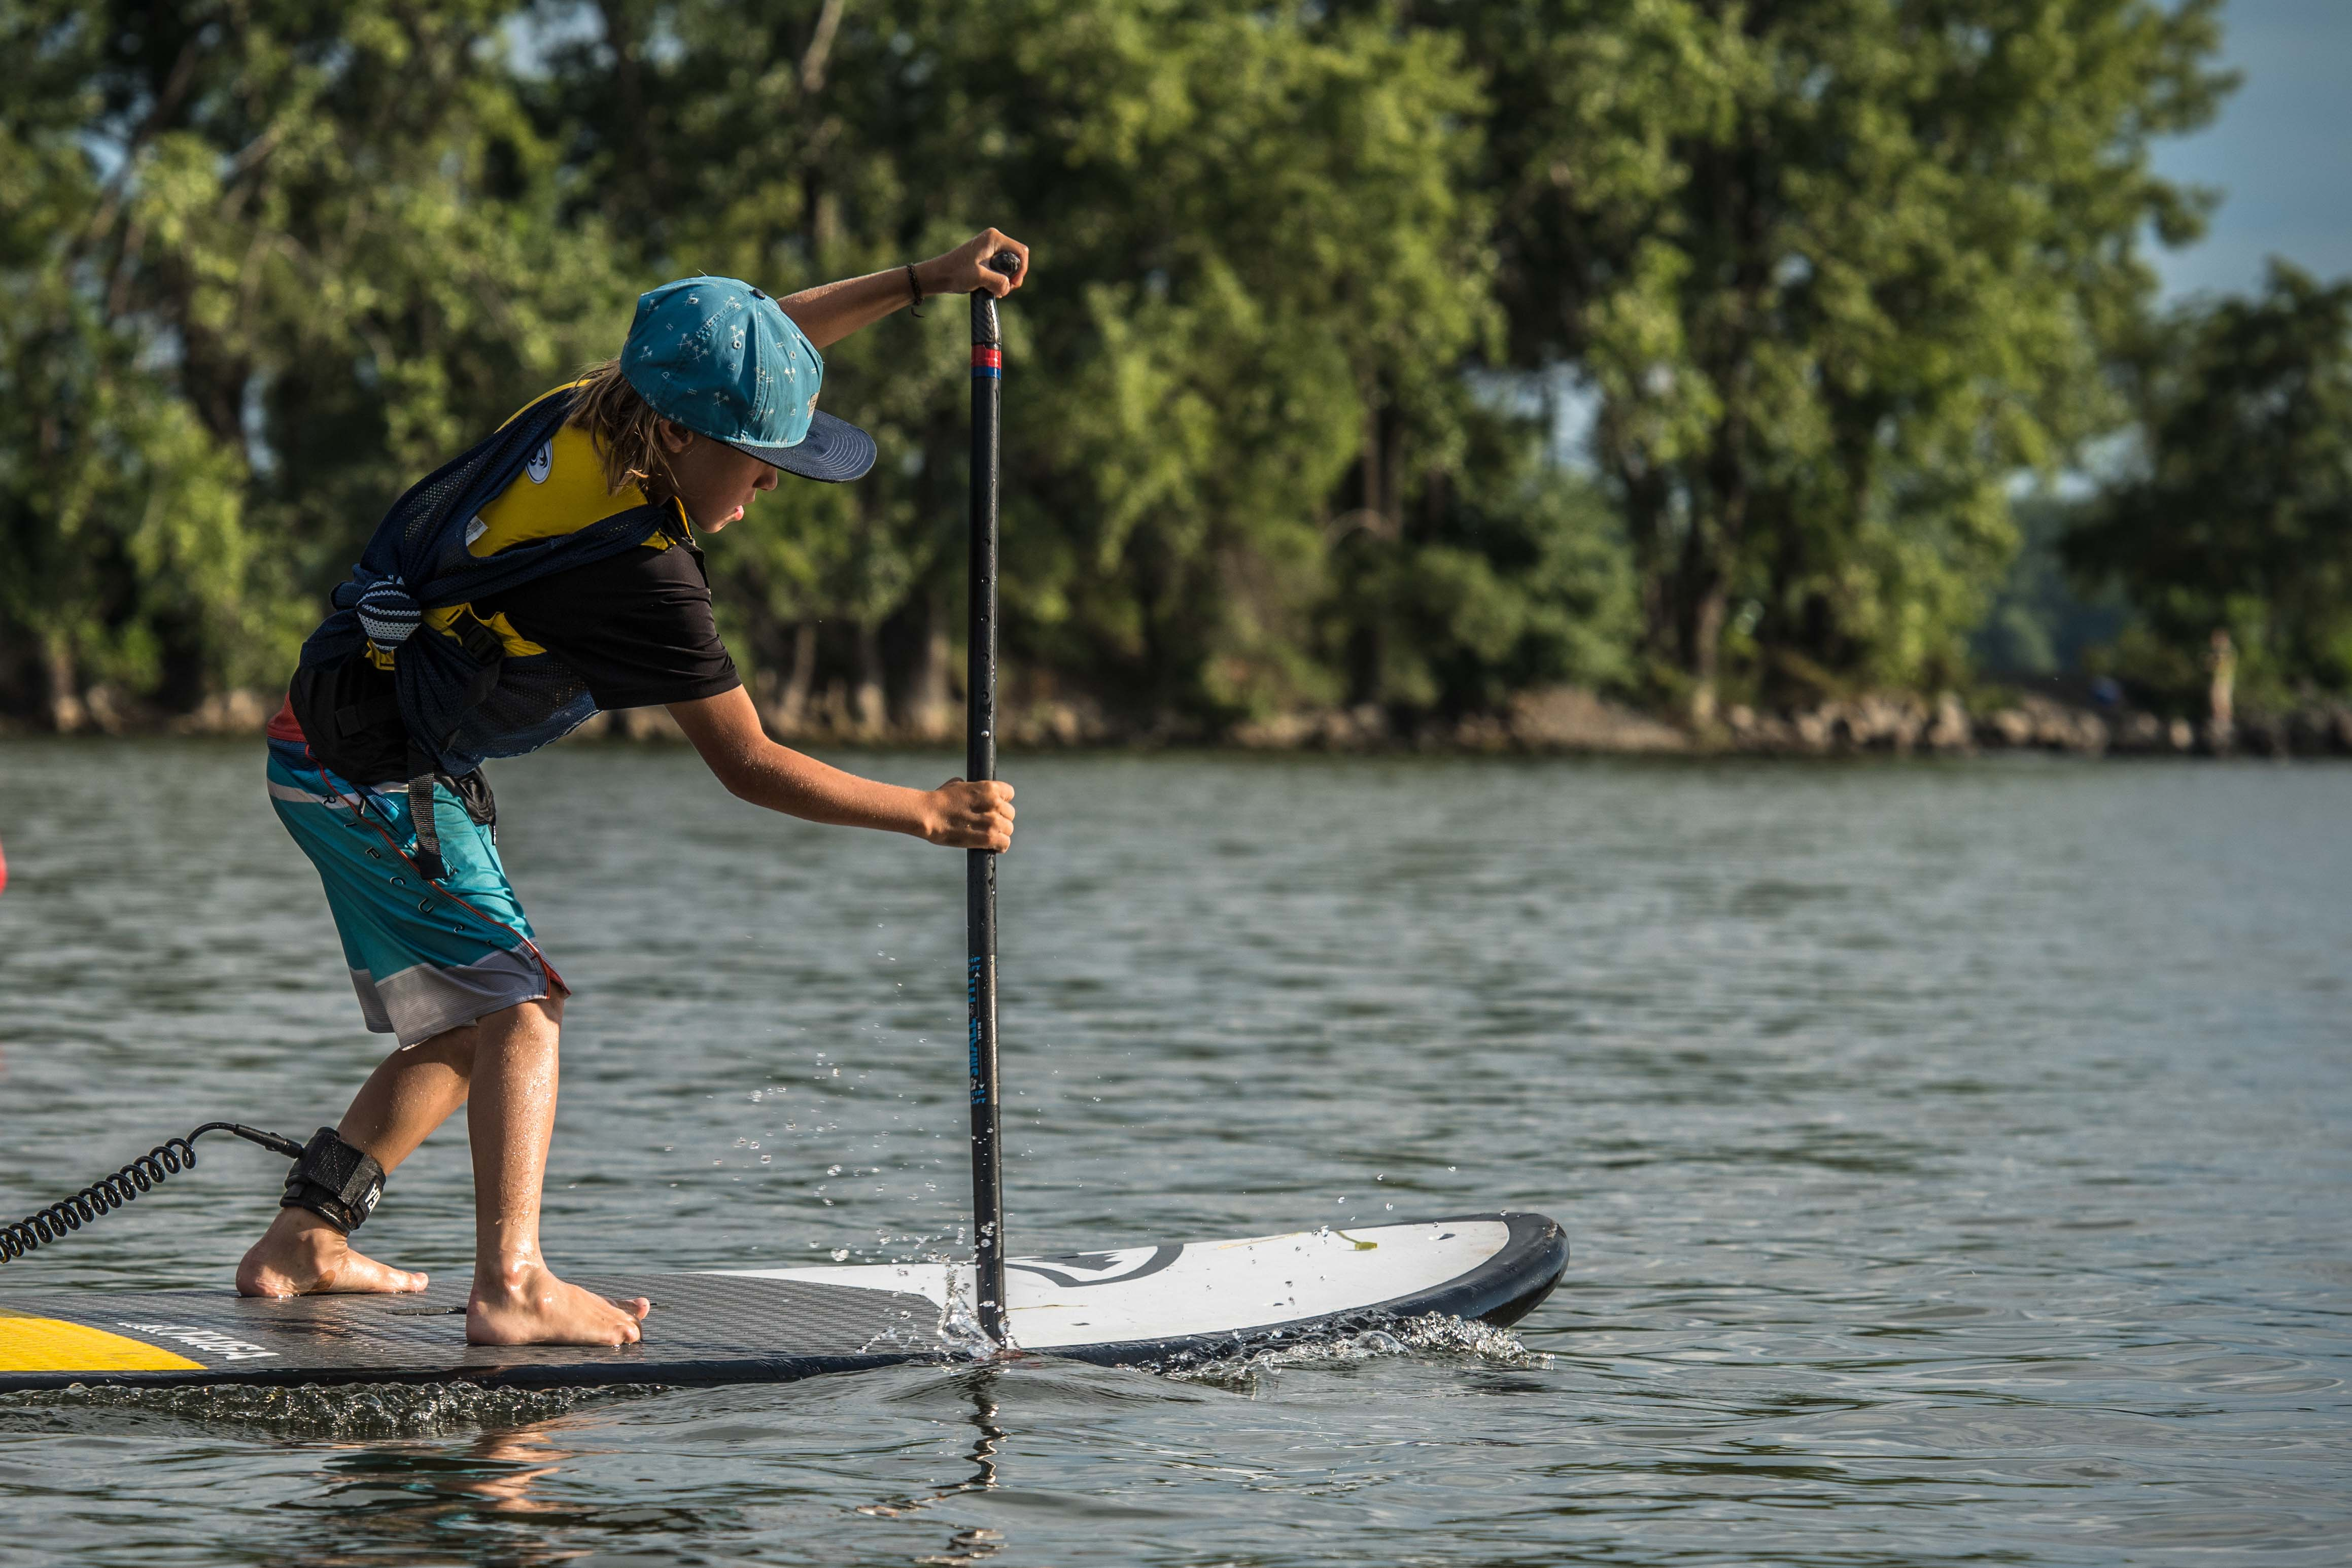 KSF Montréal - SUP - Cours, location, boutique, camp de jour - SUP yoga & fitness - Courses, rentals, shop, summer camp